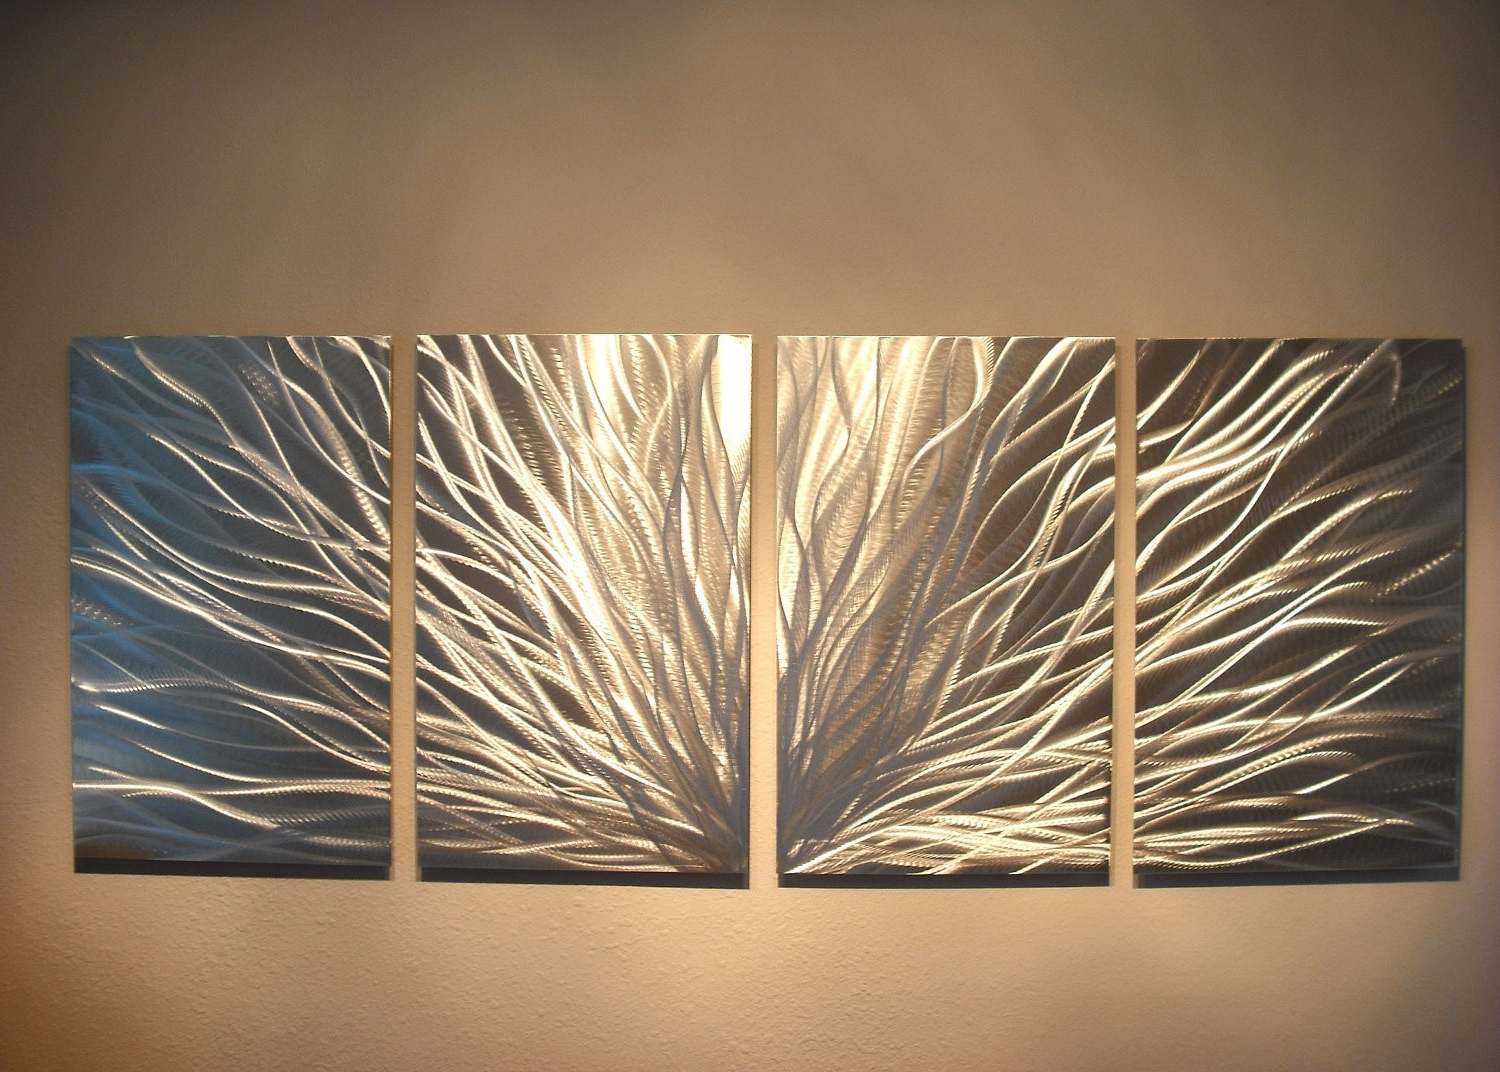 Abstract Garden Wall Art Inside Most Popular Abstract Metal Wall Art (Gallery 7 of 15)